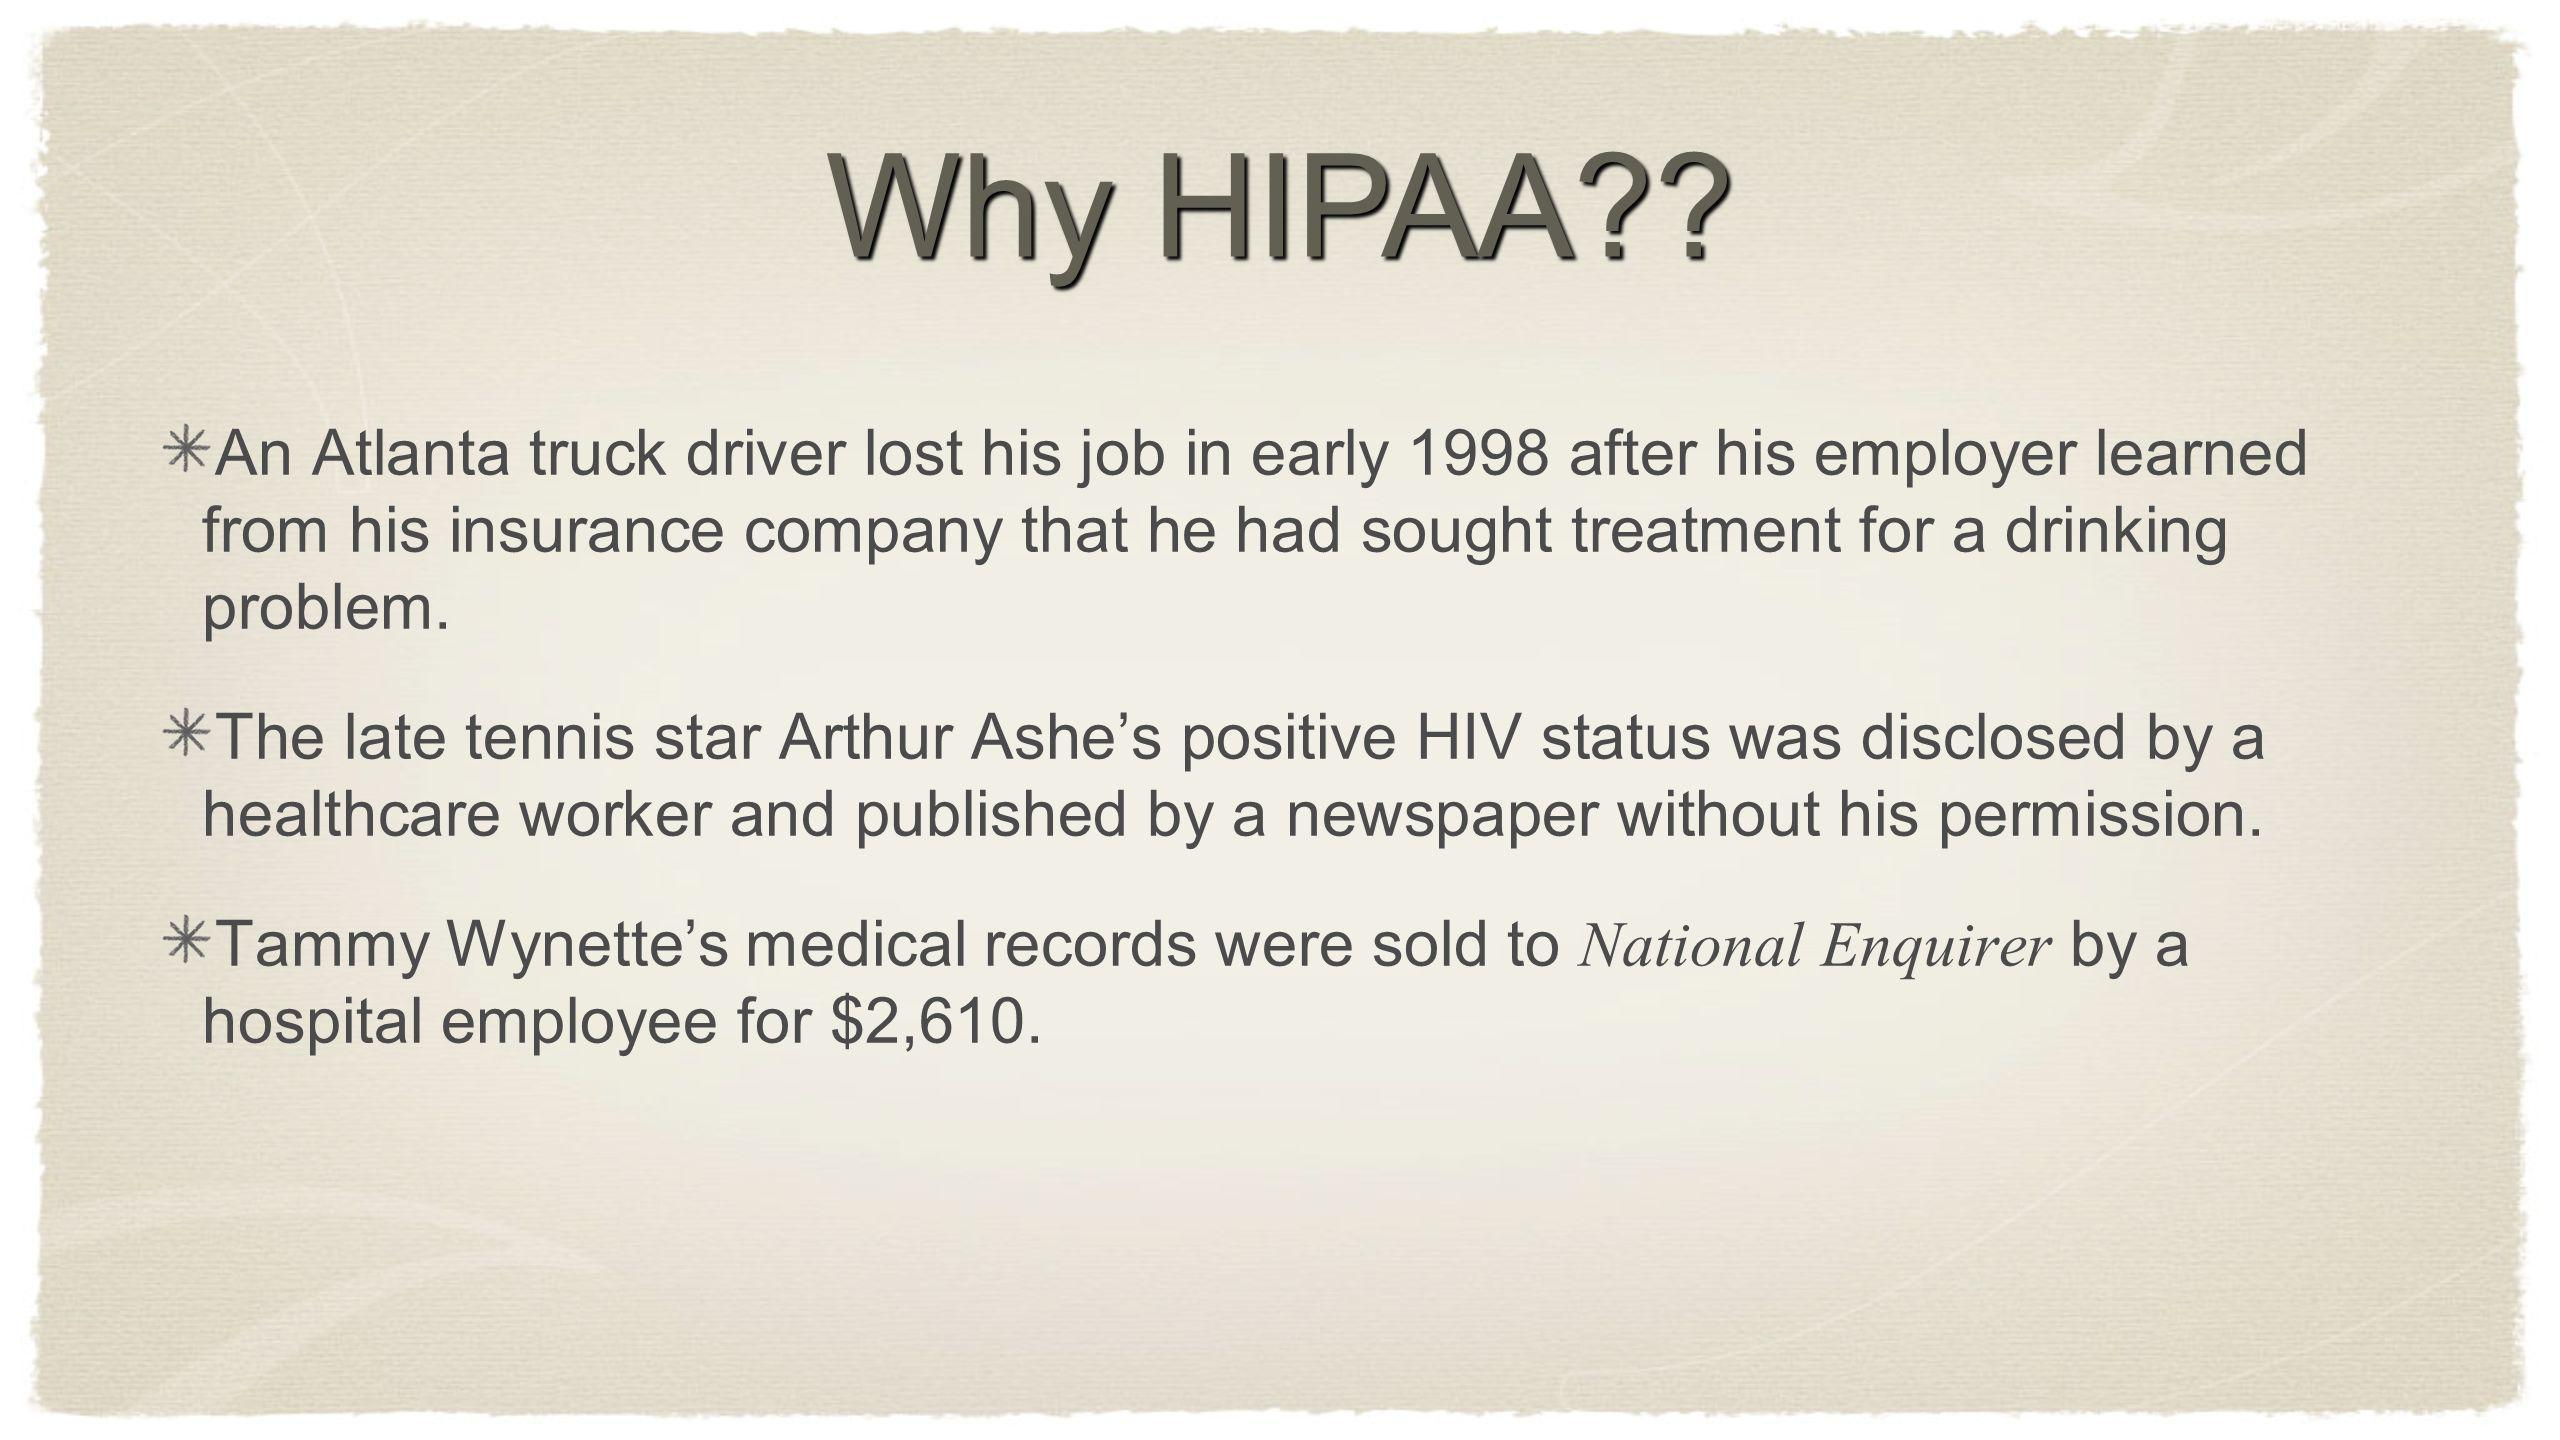 An Atlanta truck driver lost his job in early 1998 after his employer learned from his insurance company that he had sought treatment for a drinking p